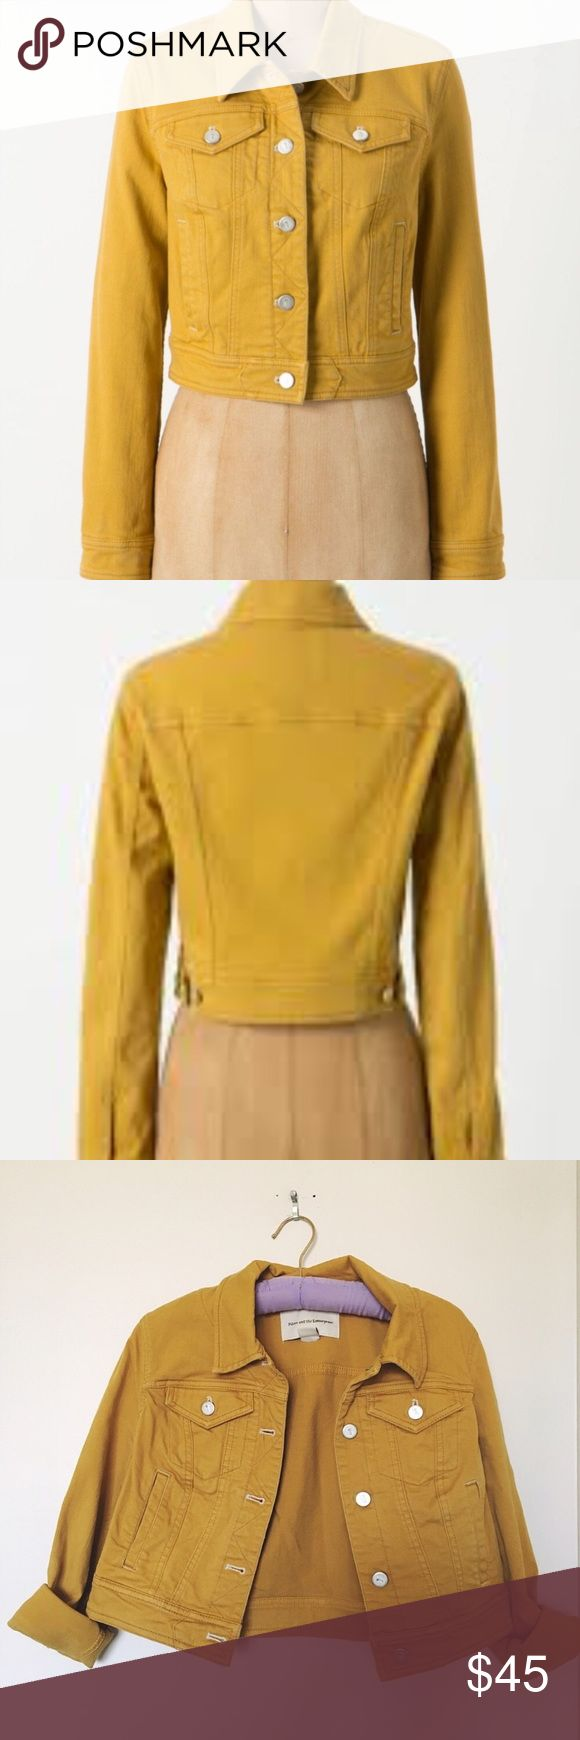 Anthropologie Pilcro Cropped Mustard Jean Jacket Gently worn.  Looks new.  99% cotton 1% spandex.  Size Small. Anthropologie Jackets & Coats Jean Jackets